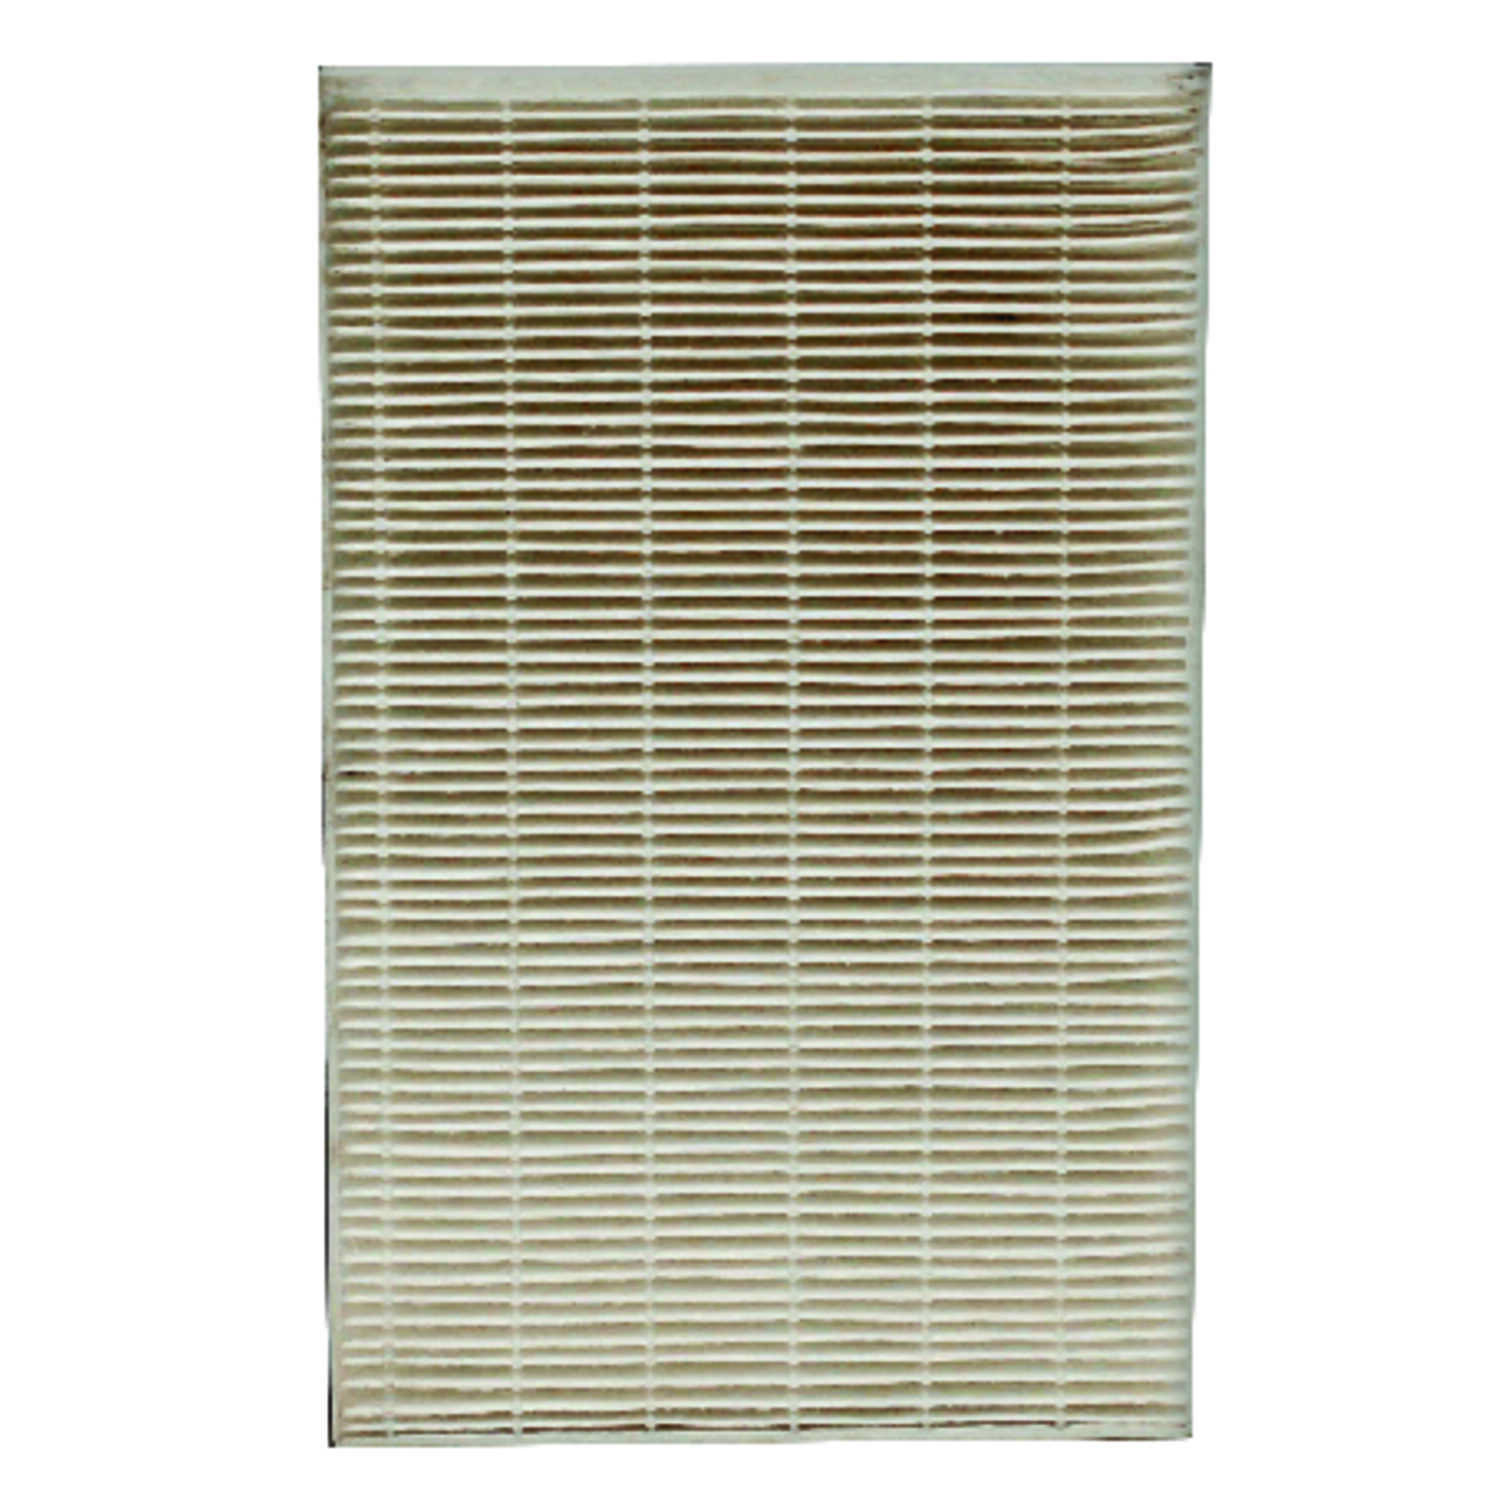 Honeywell  1.65 in. W x 10.2 in. H Round  HEPA Air Purifier Filter